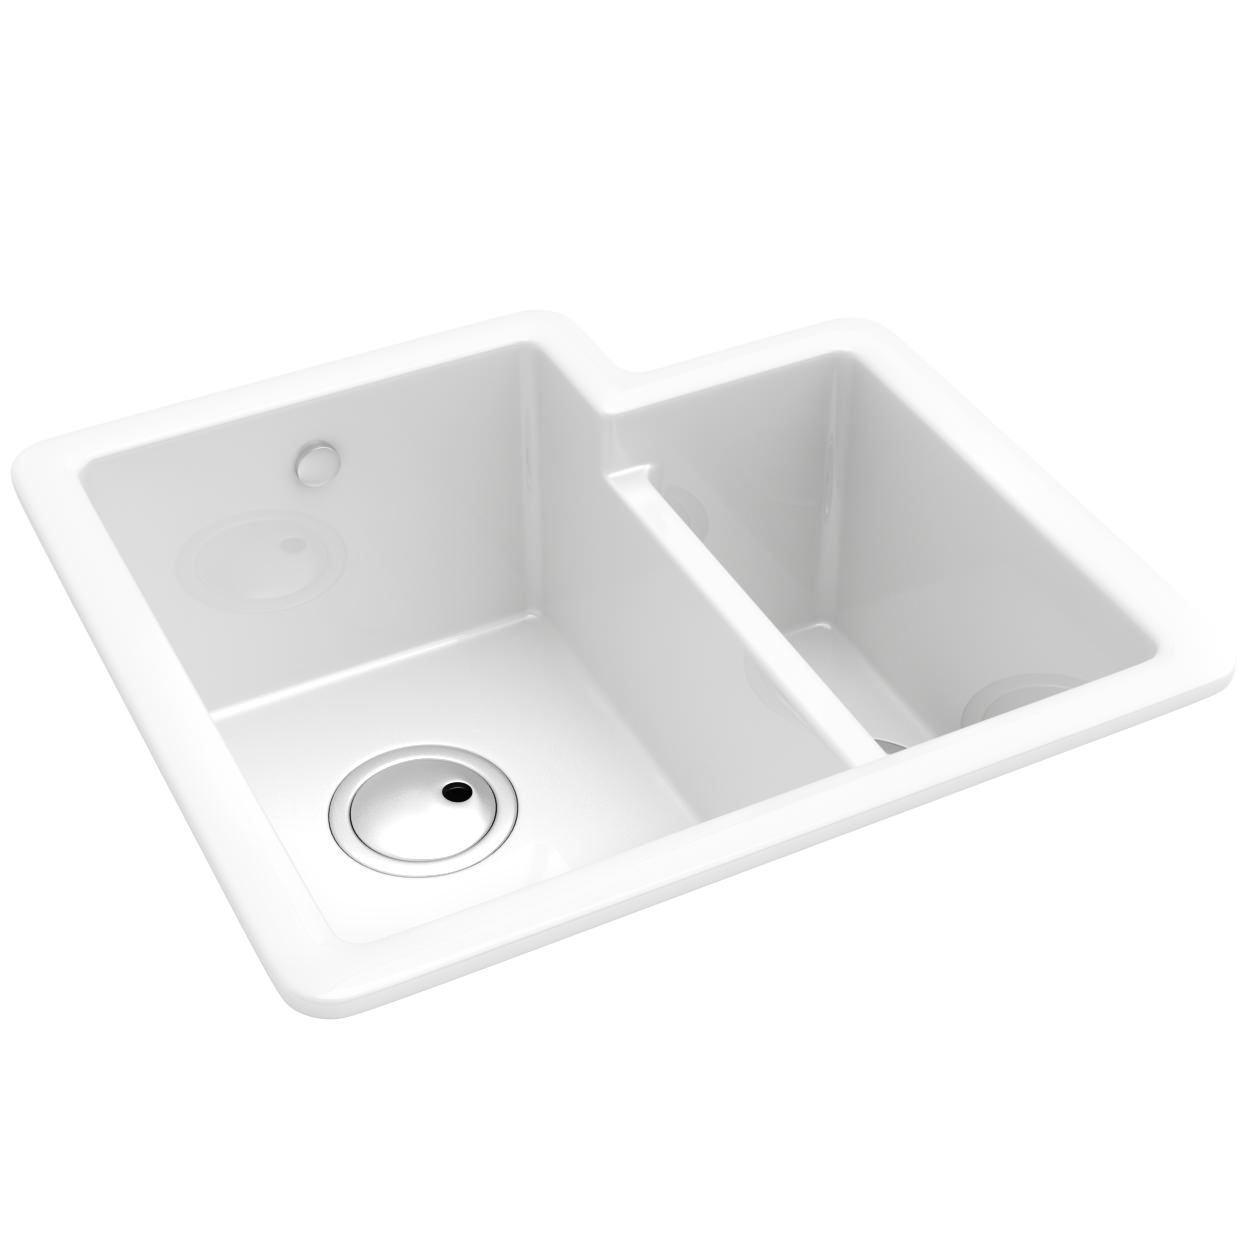 Matrix CR25 1.5 Bowl Ceramic Kitchen Sink   AW1010